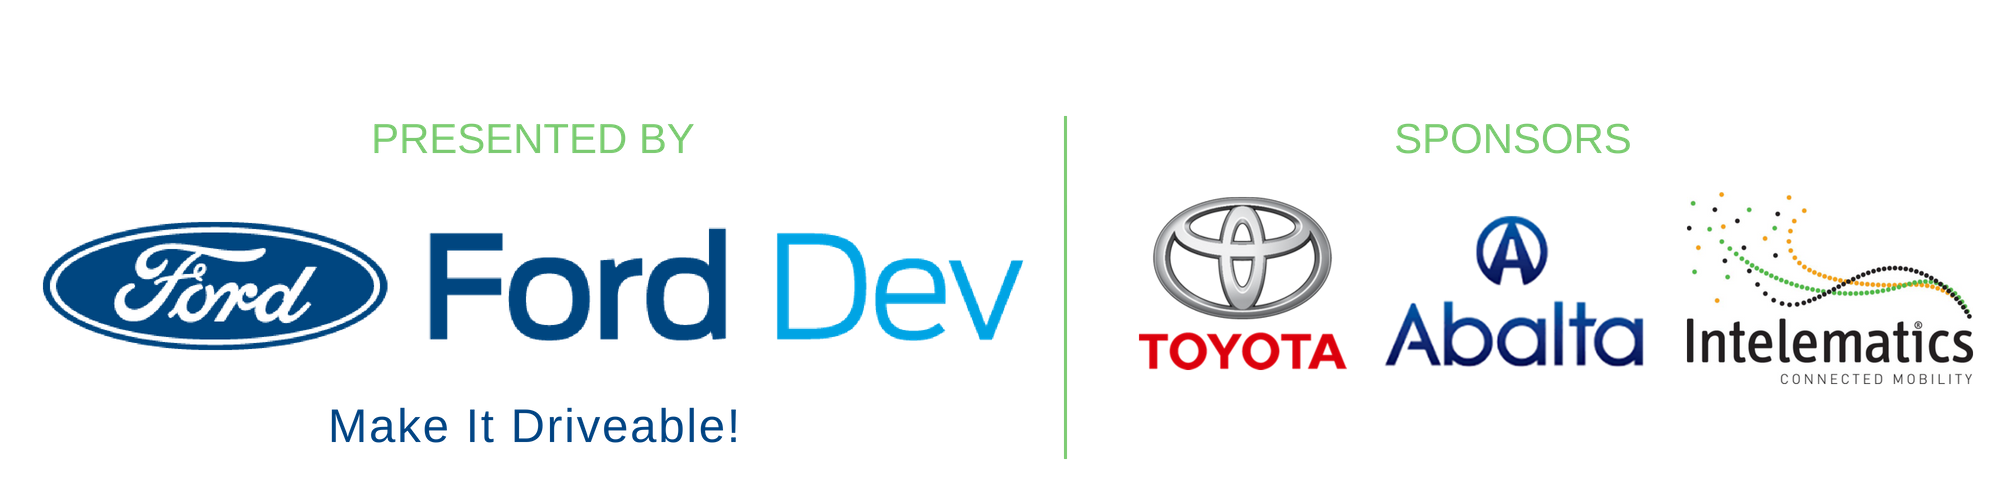 Presented by Ford Dev, sponsored by Toyota, Abalta, and Intelematics